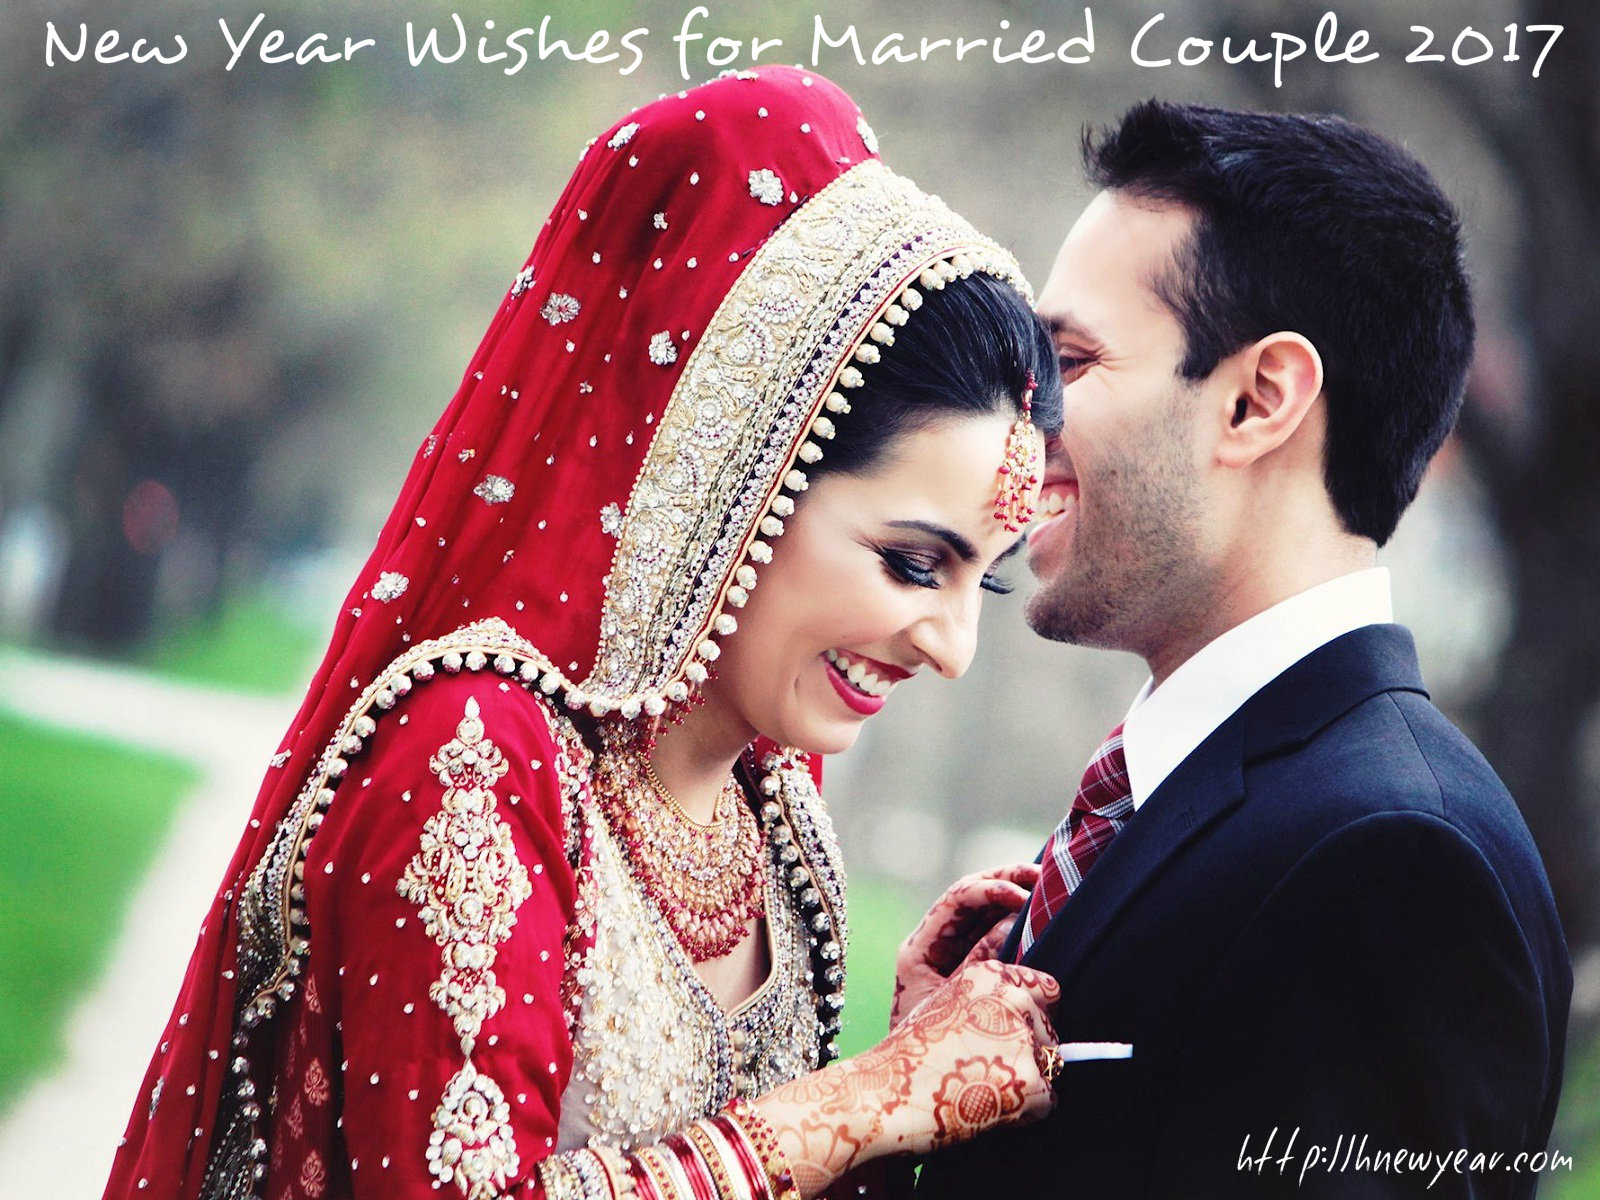 Wallpaper download karne - 43 Top New Year Wishes For Married Couple 2017 Messages